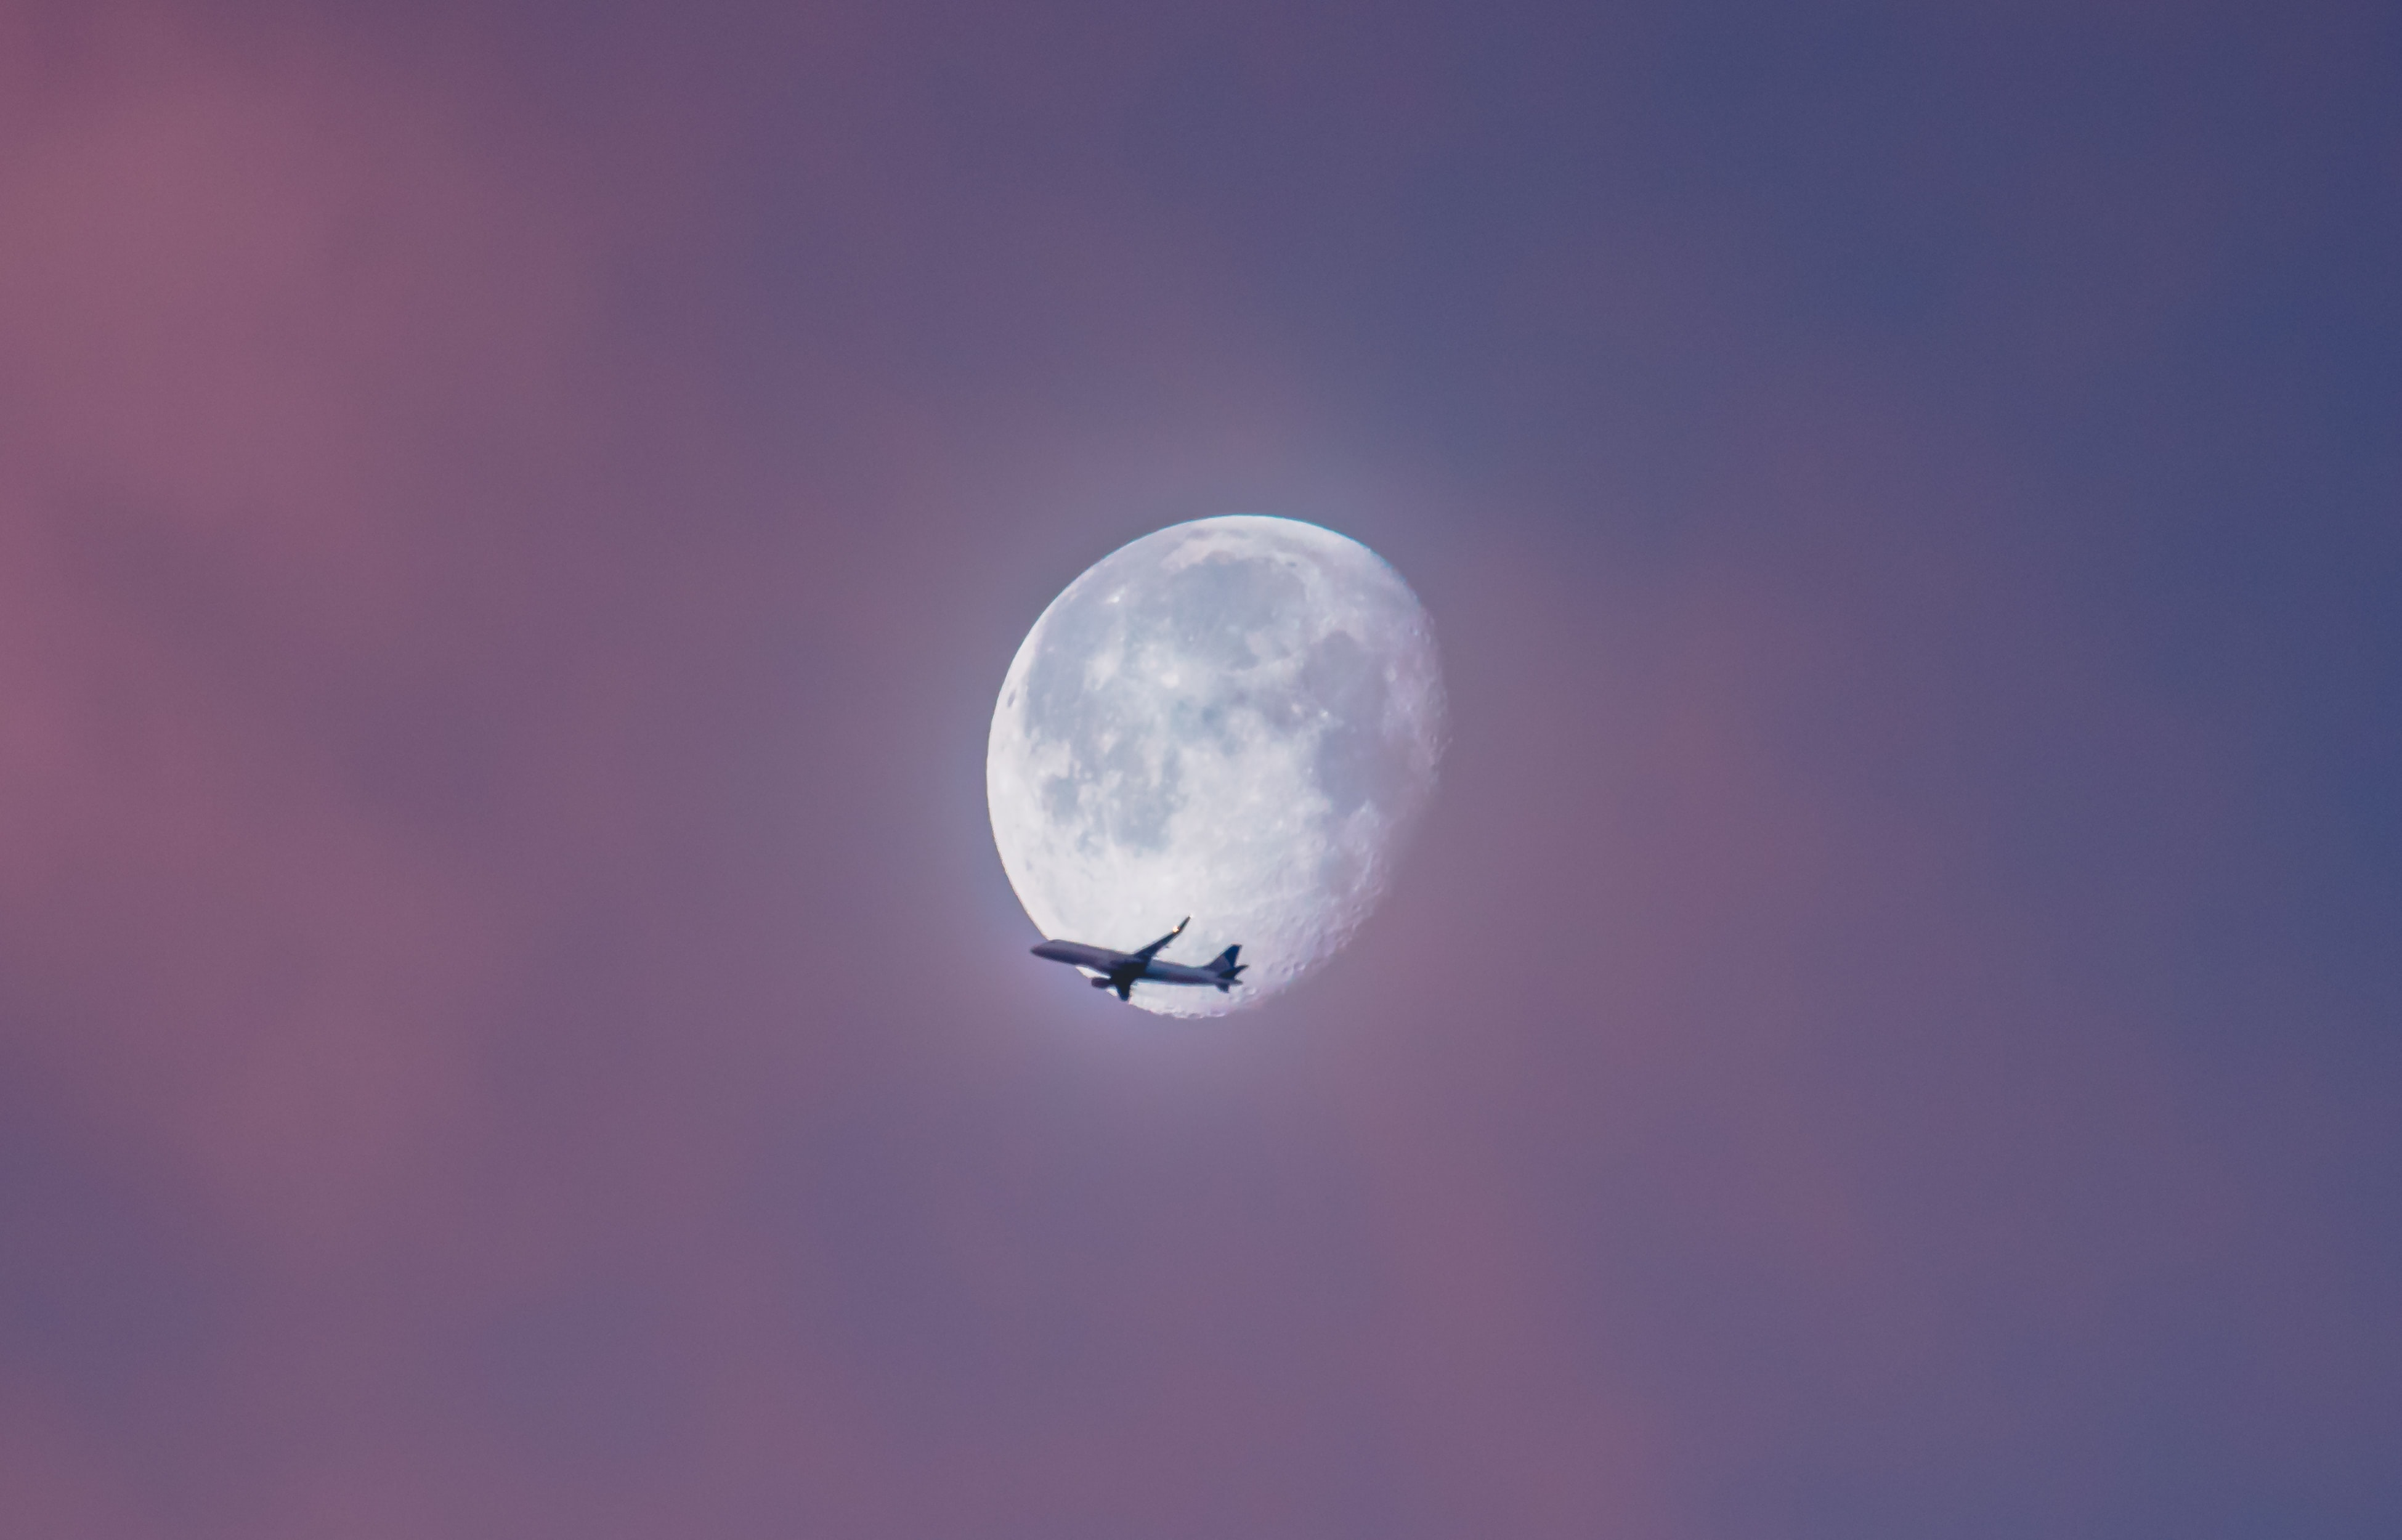 flying plane at sky during full moon at daytime